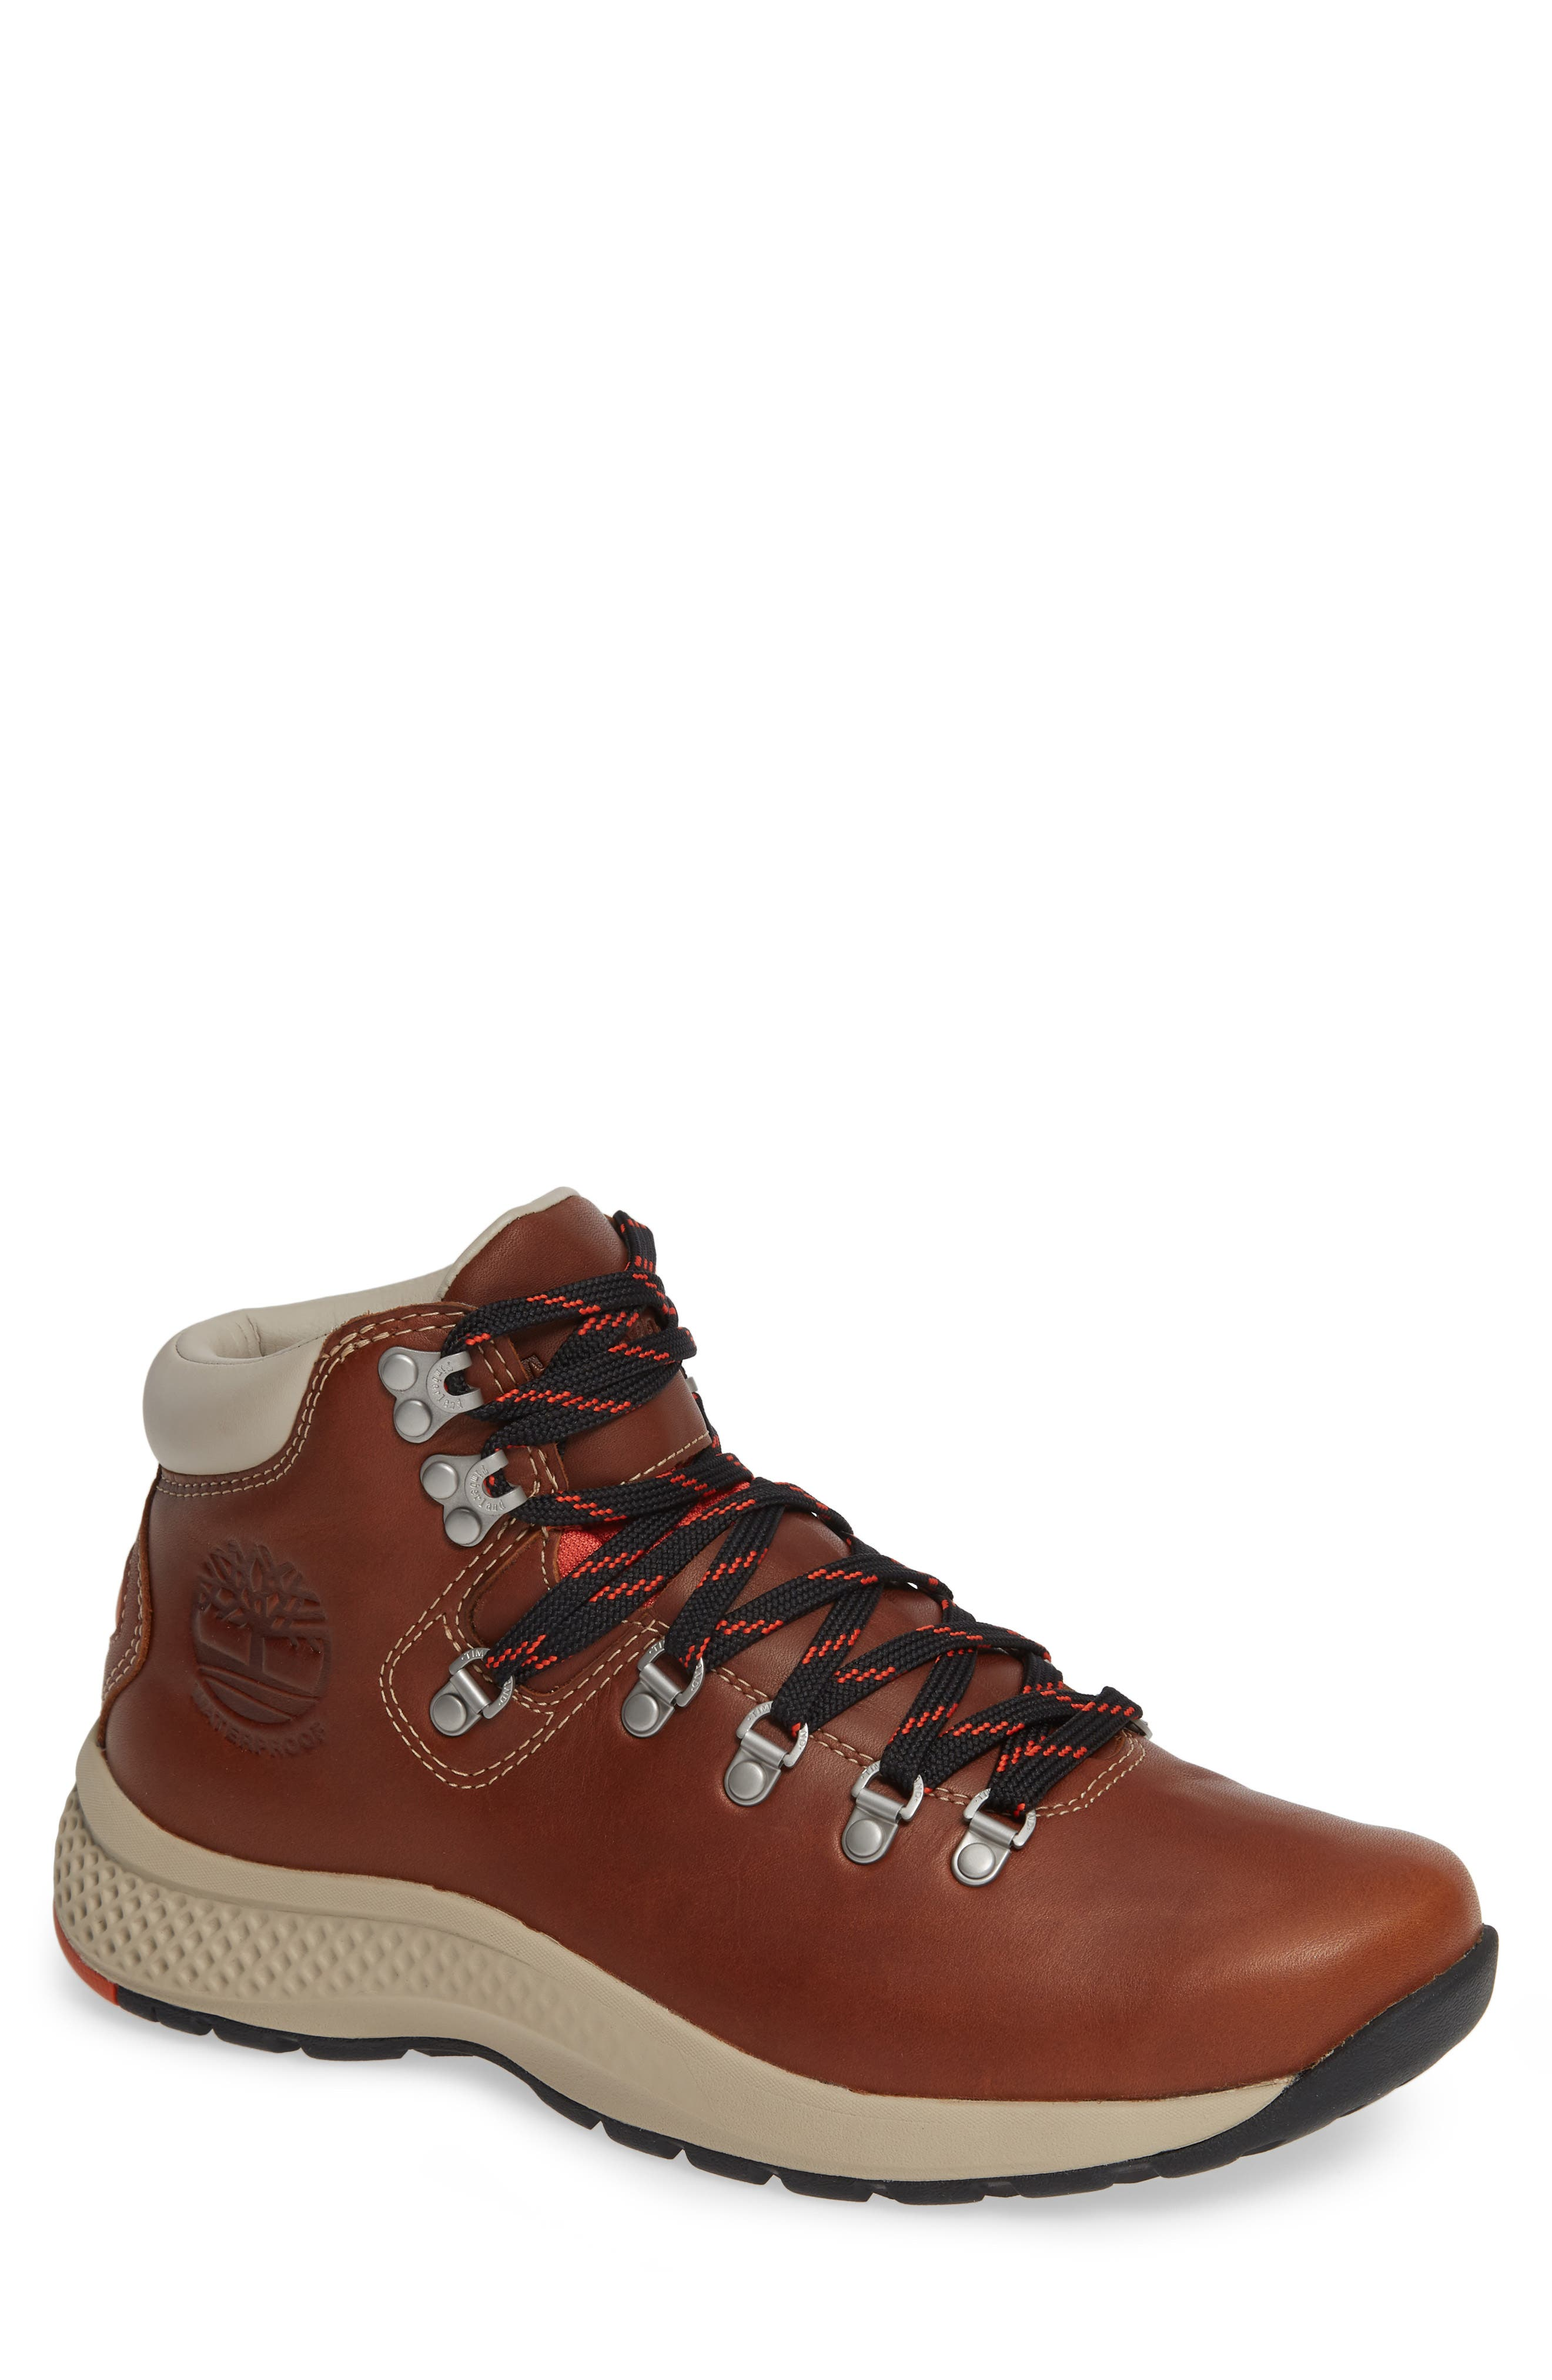 1978 Aerocore Waterproof Hiking Boot,                             Main thumbnail 1, color,                             BROWN LEATHER